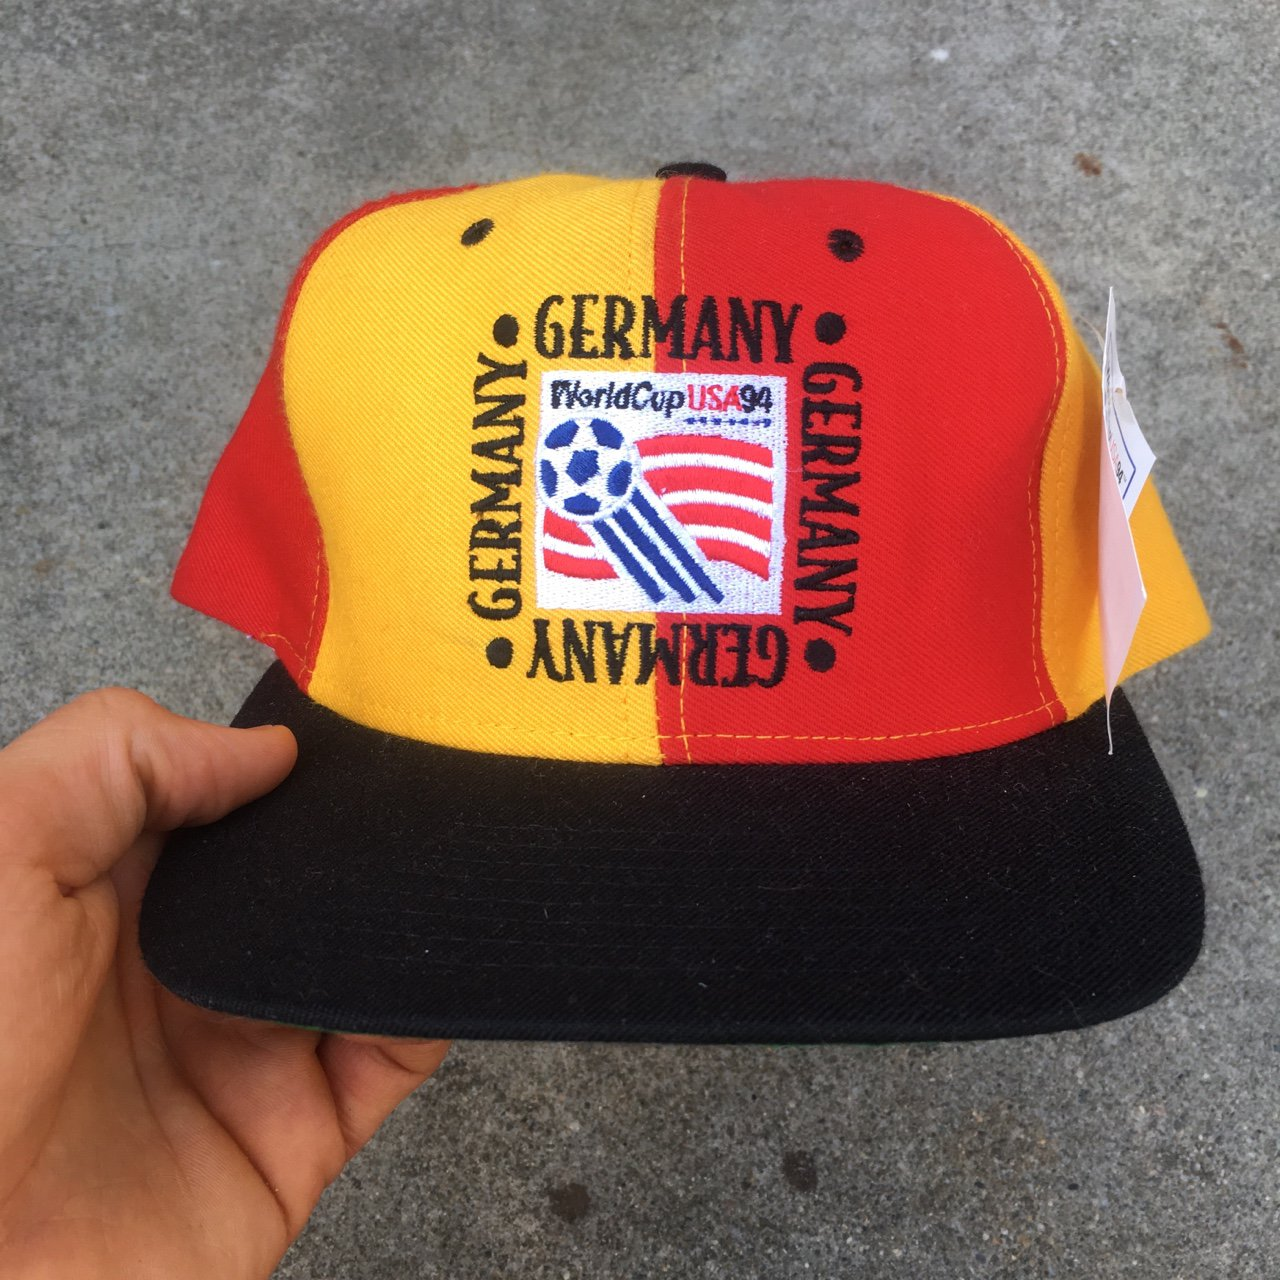 Vintage World Cup 94 Team Germany snapback cap. Deadstock in - Depop e0be8ad93b6f